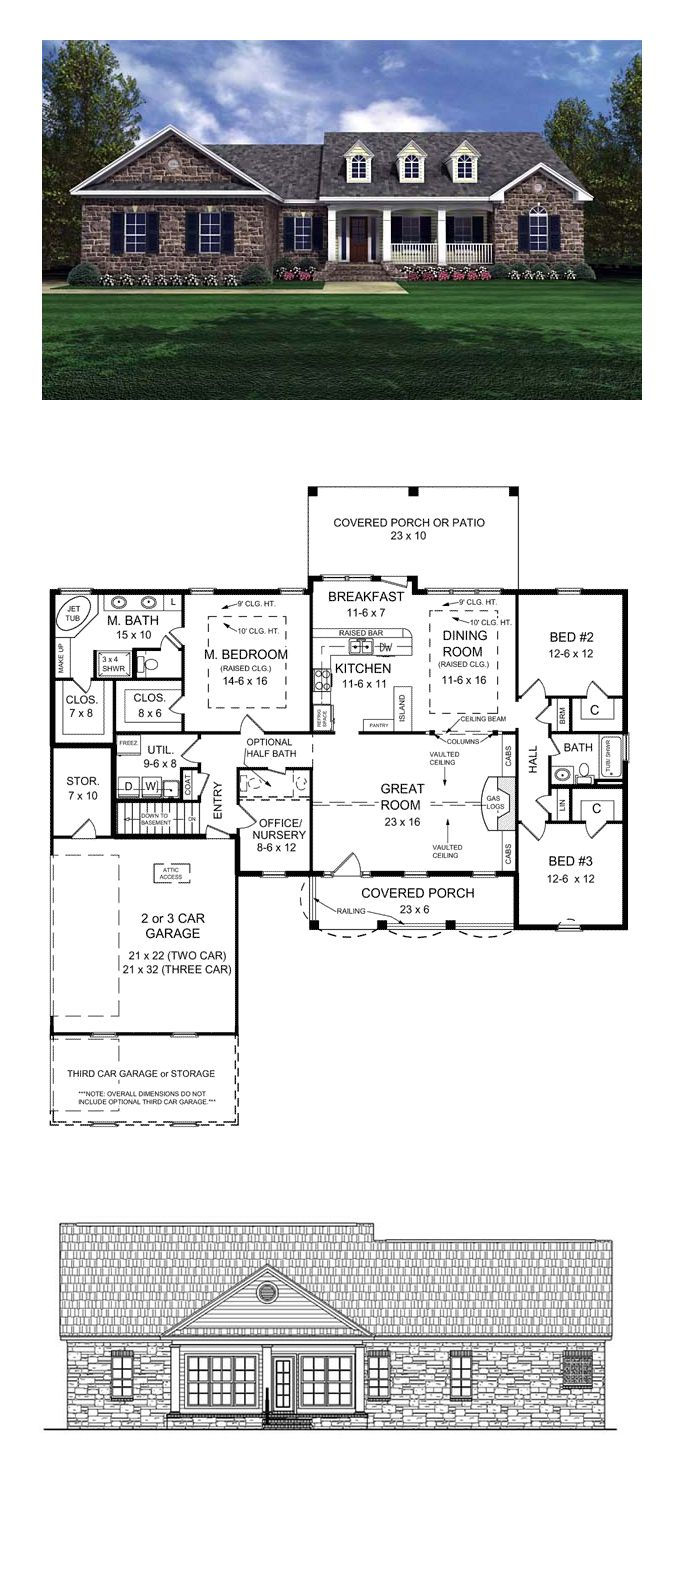 Ranch Style Home Plan 59024 | Total Living Area: 2002 sq. ft., 3 bedrooms and 2 bathrooms. This home elicits the charming appeal of a quaint cottage that you might find in an old village in the English countryside. Very unique design which maximizes every inch of its useable space. #houseplan #ranchstyle